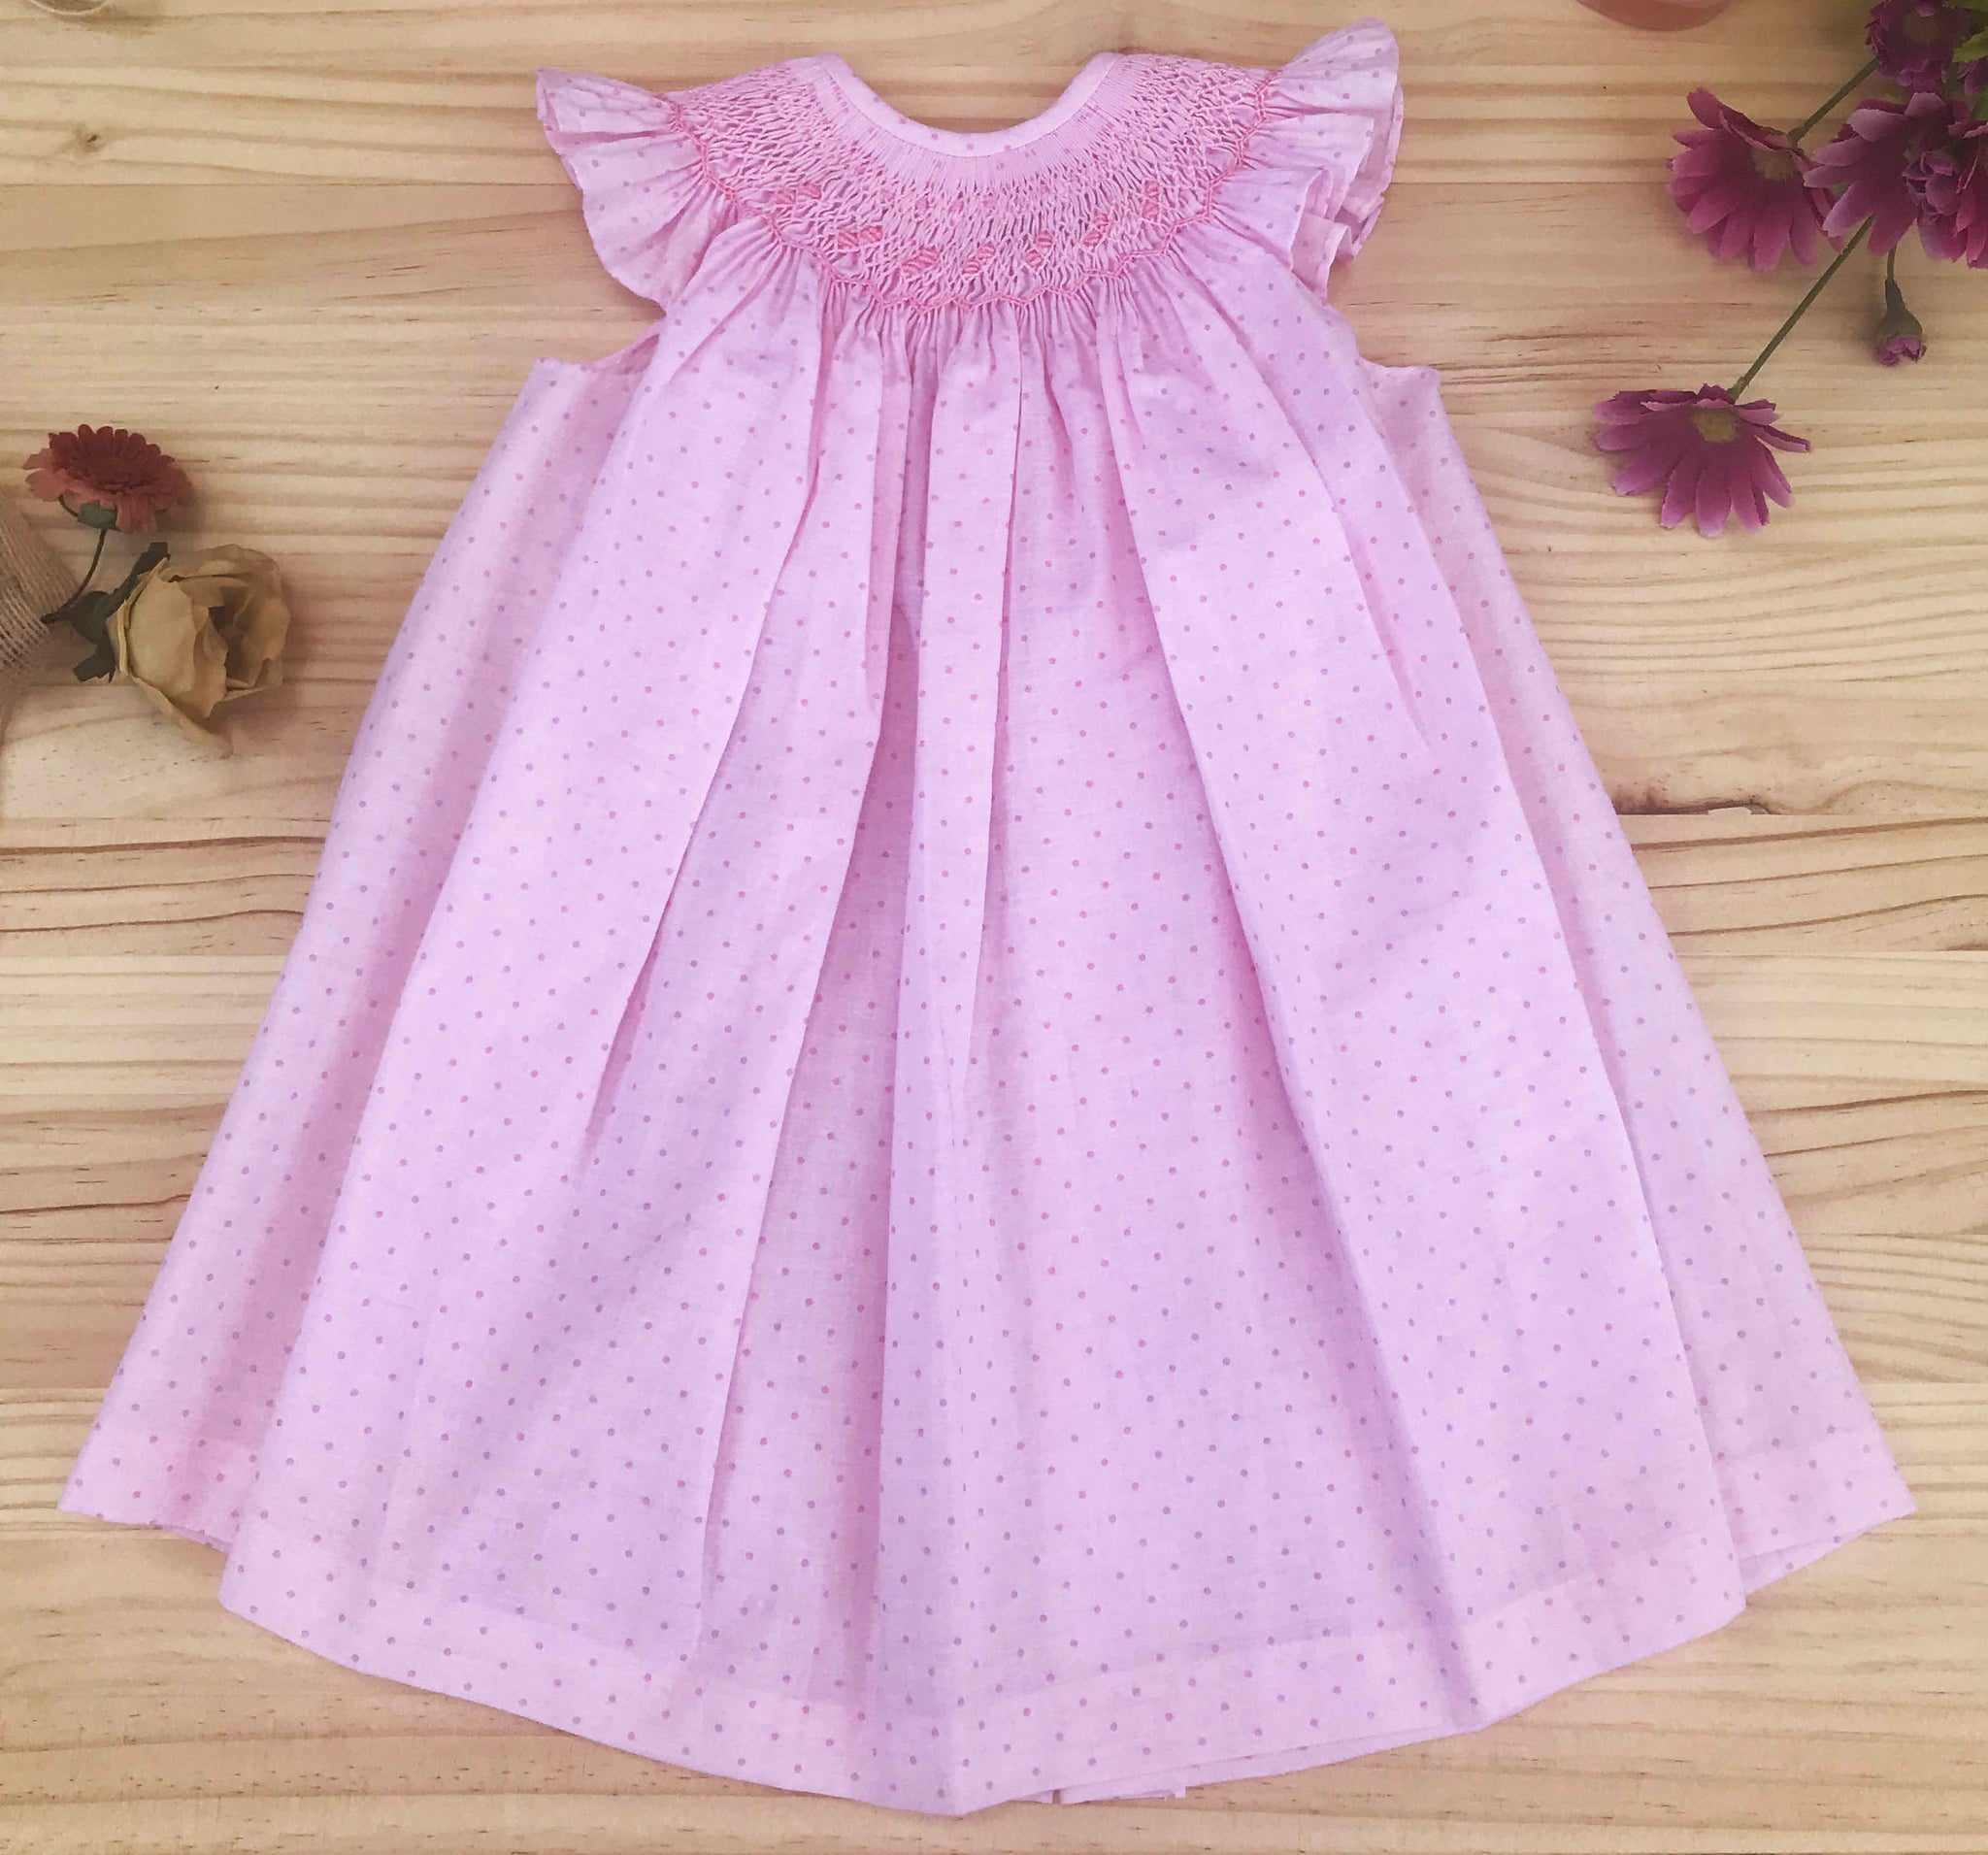 Casual Cotton Dress with ruffle shoulders dots pink by Patucos